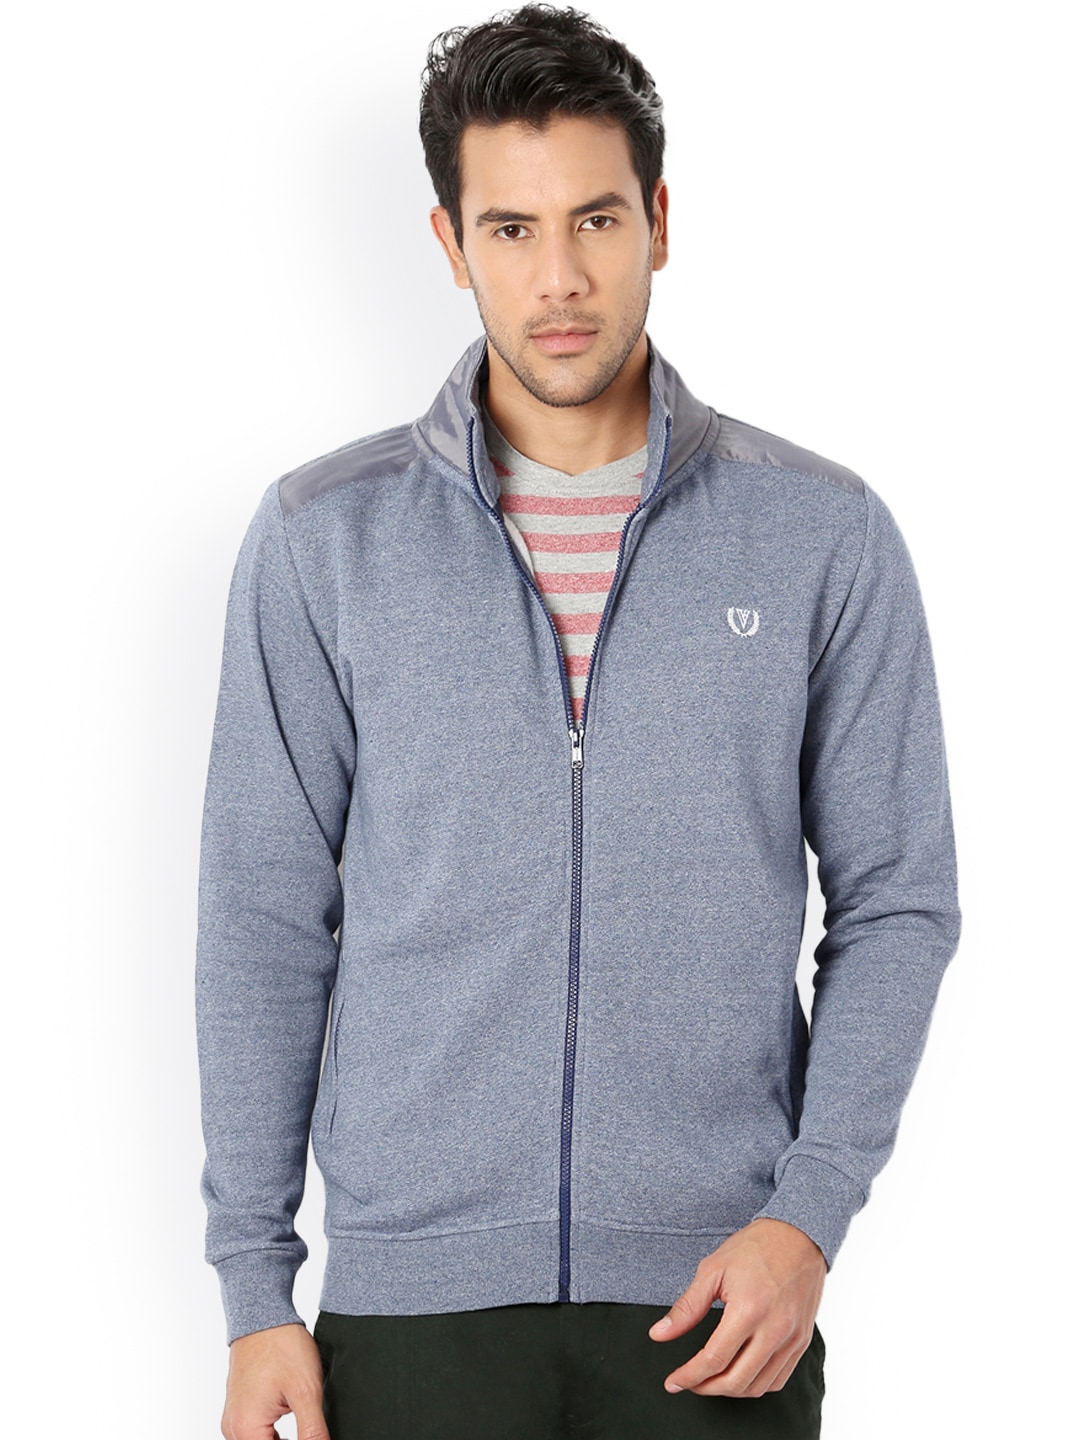 Van Heusen Sport Men Blue Solid Sweatshirt image